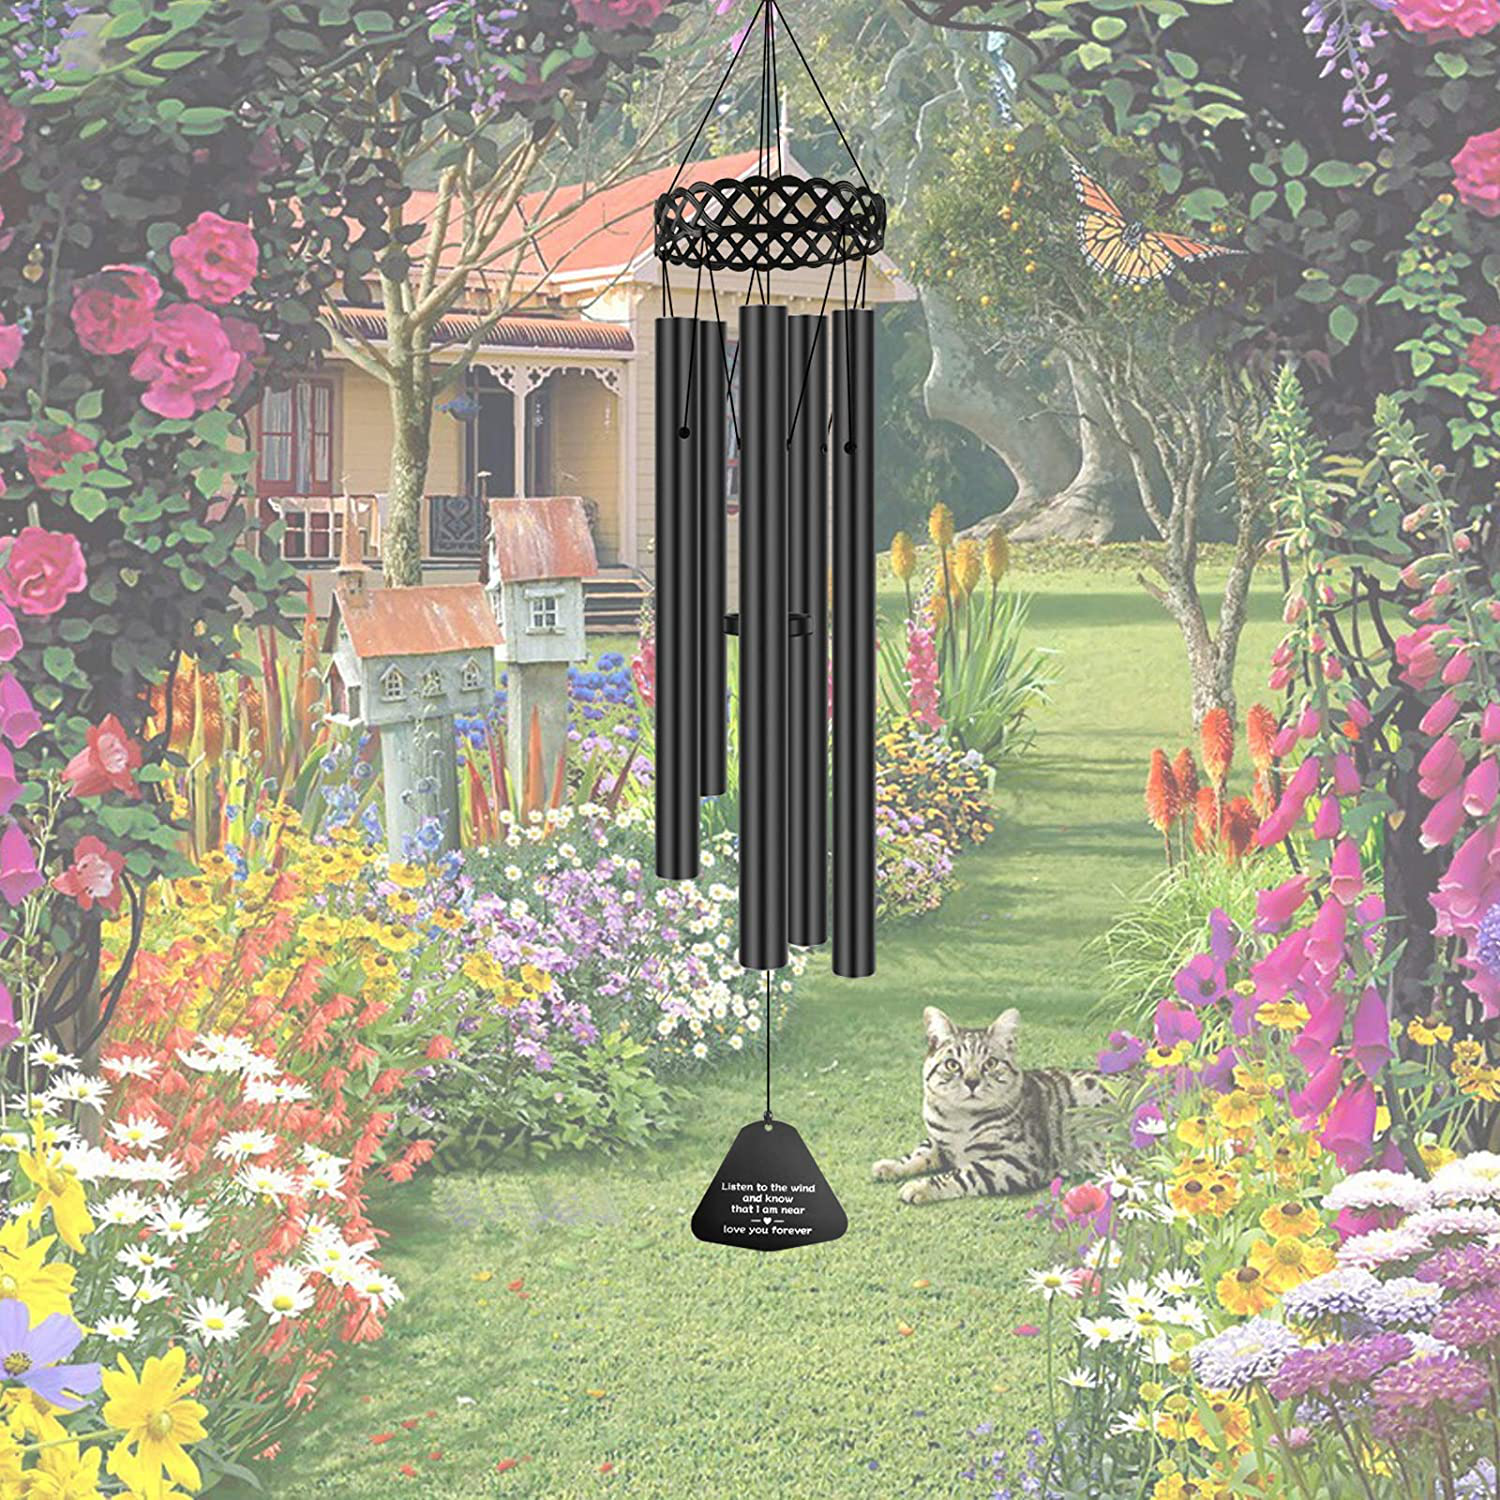 Memorial Wind Chimes for Outside Deep Tone,30' Windchimes Sympathy Gift Soothing Relaxing Melody, Metal Wind Chime for Mom ,Grandma, Pet, Loss of Loved One or Christmas Housewarming Decor Chime …